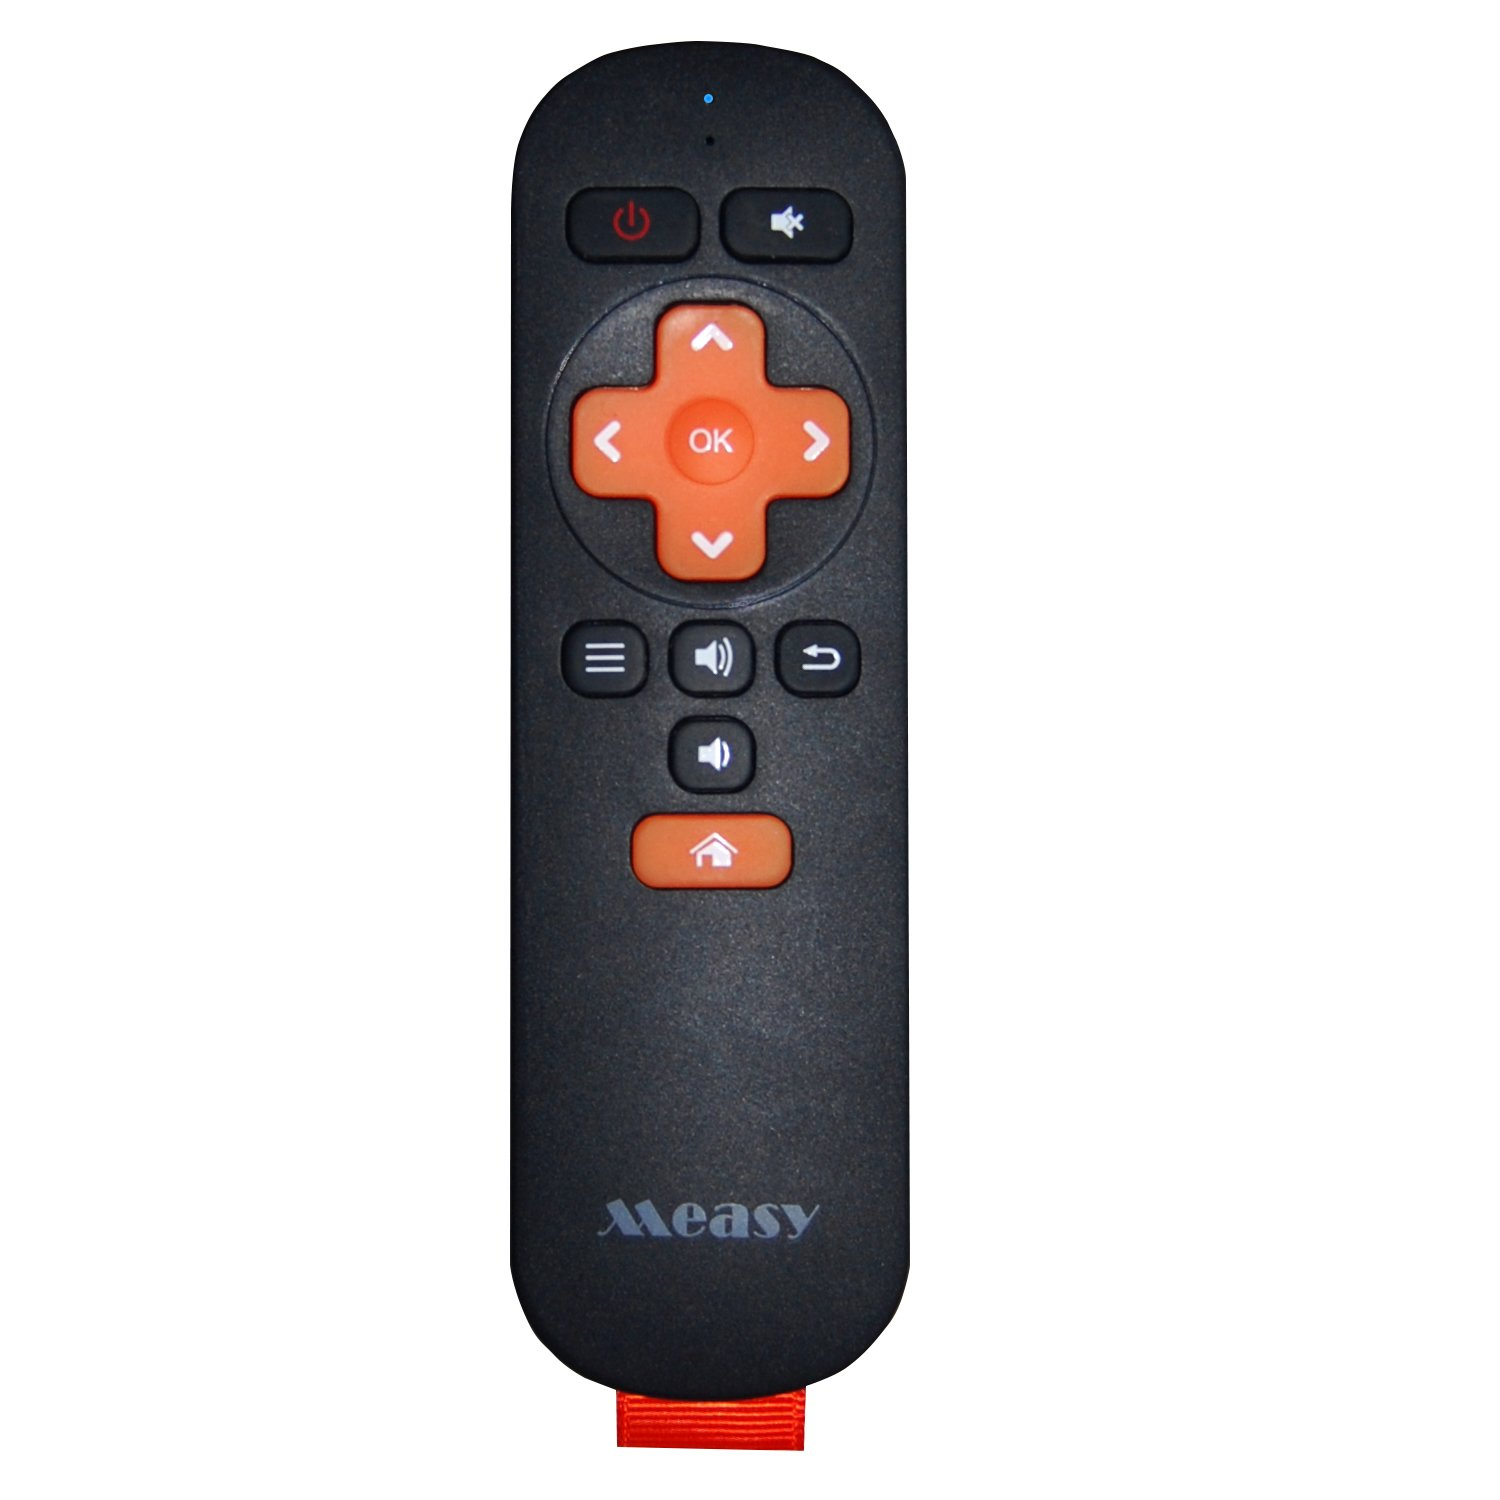 2.4G Wireless Keyboard Air Fly Mouse Remote Controller for Laptop PC Smart TV Box Android Dongle